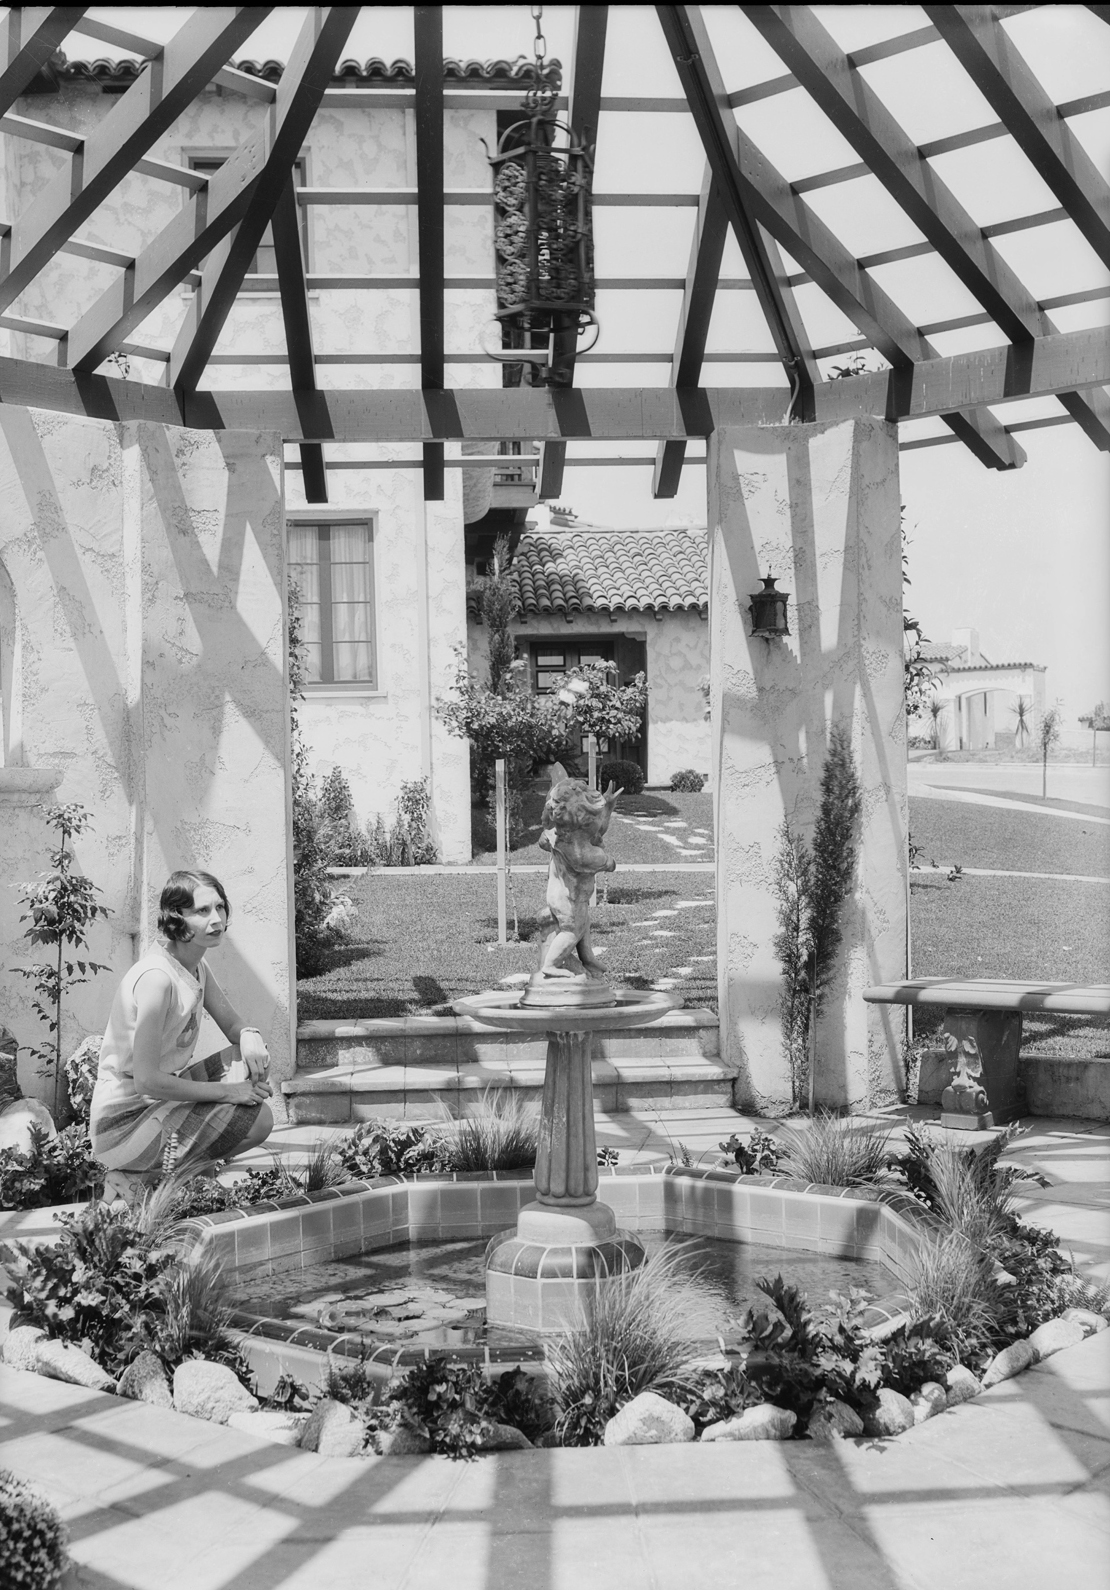 Peyolas_etc_in_View_Park_Southern_California_Los_Angeles_CA_1929_image_5.jpg